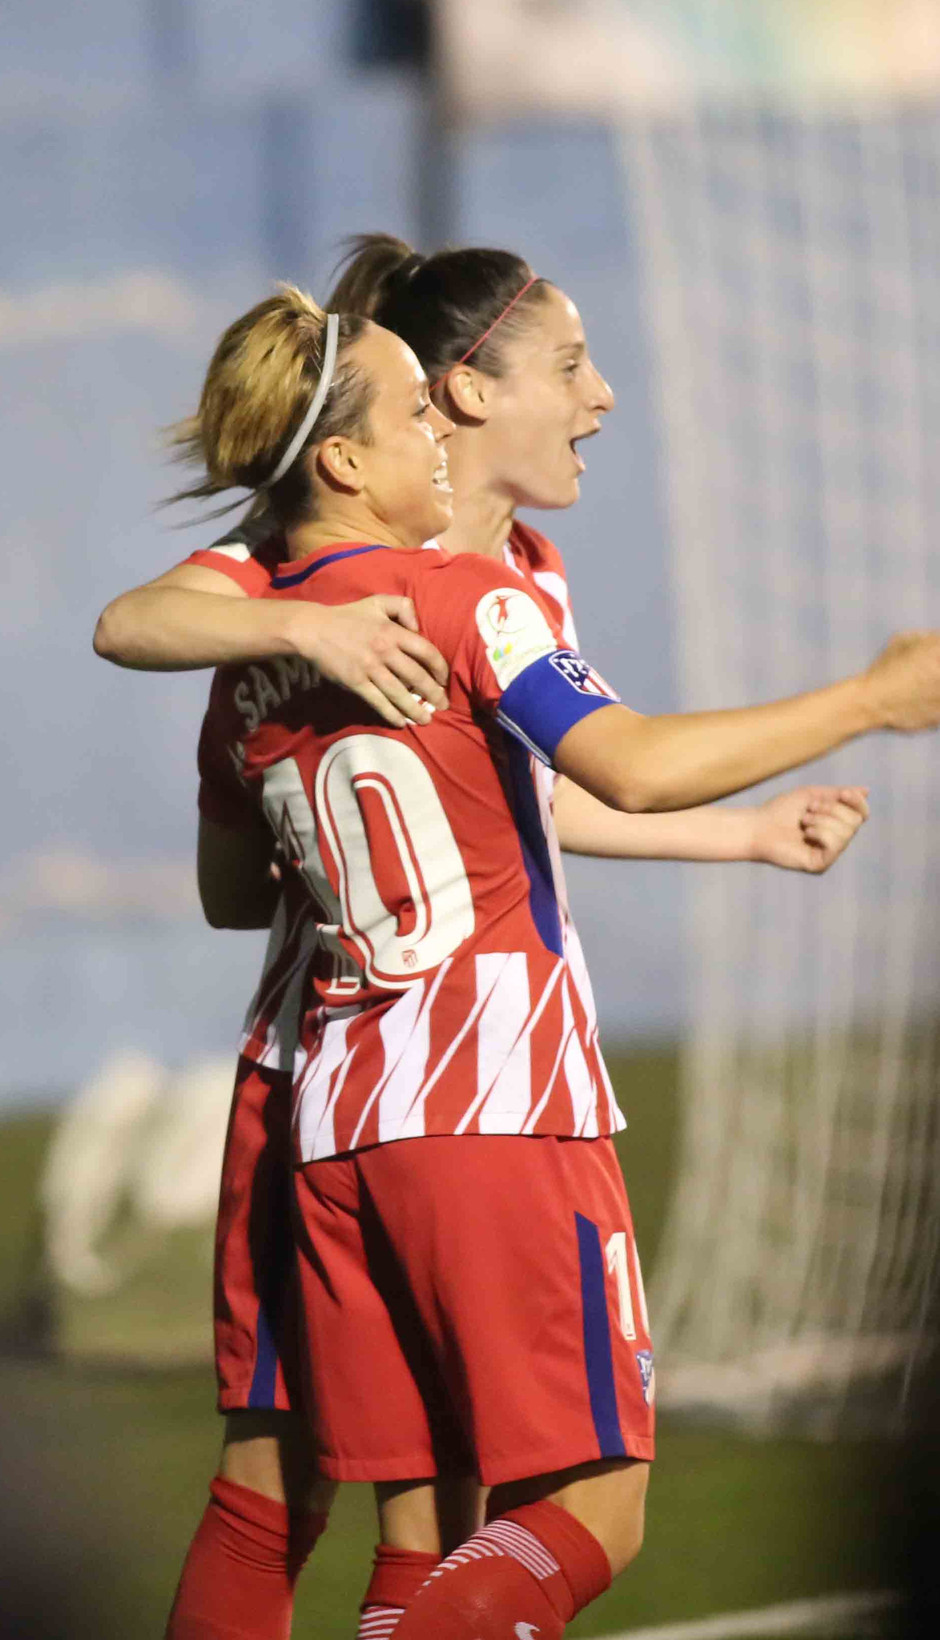 Temp. 17/18 | Atlético de Madrid Femenino | 24-03-18 | Jornada 24 | Esther y Amanda